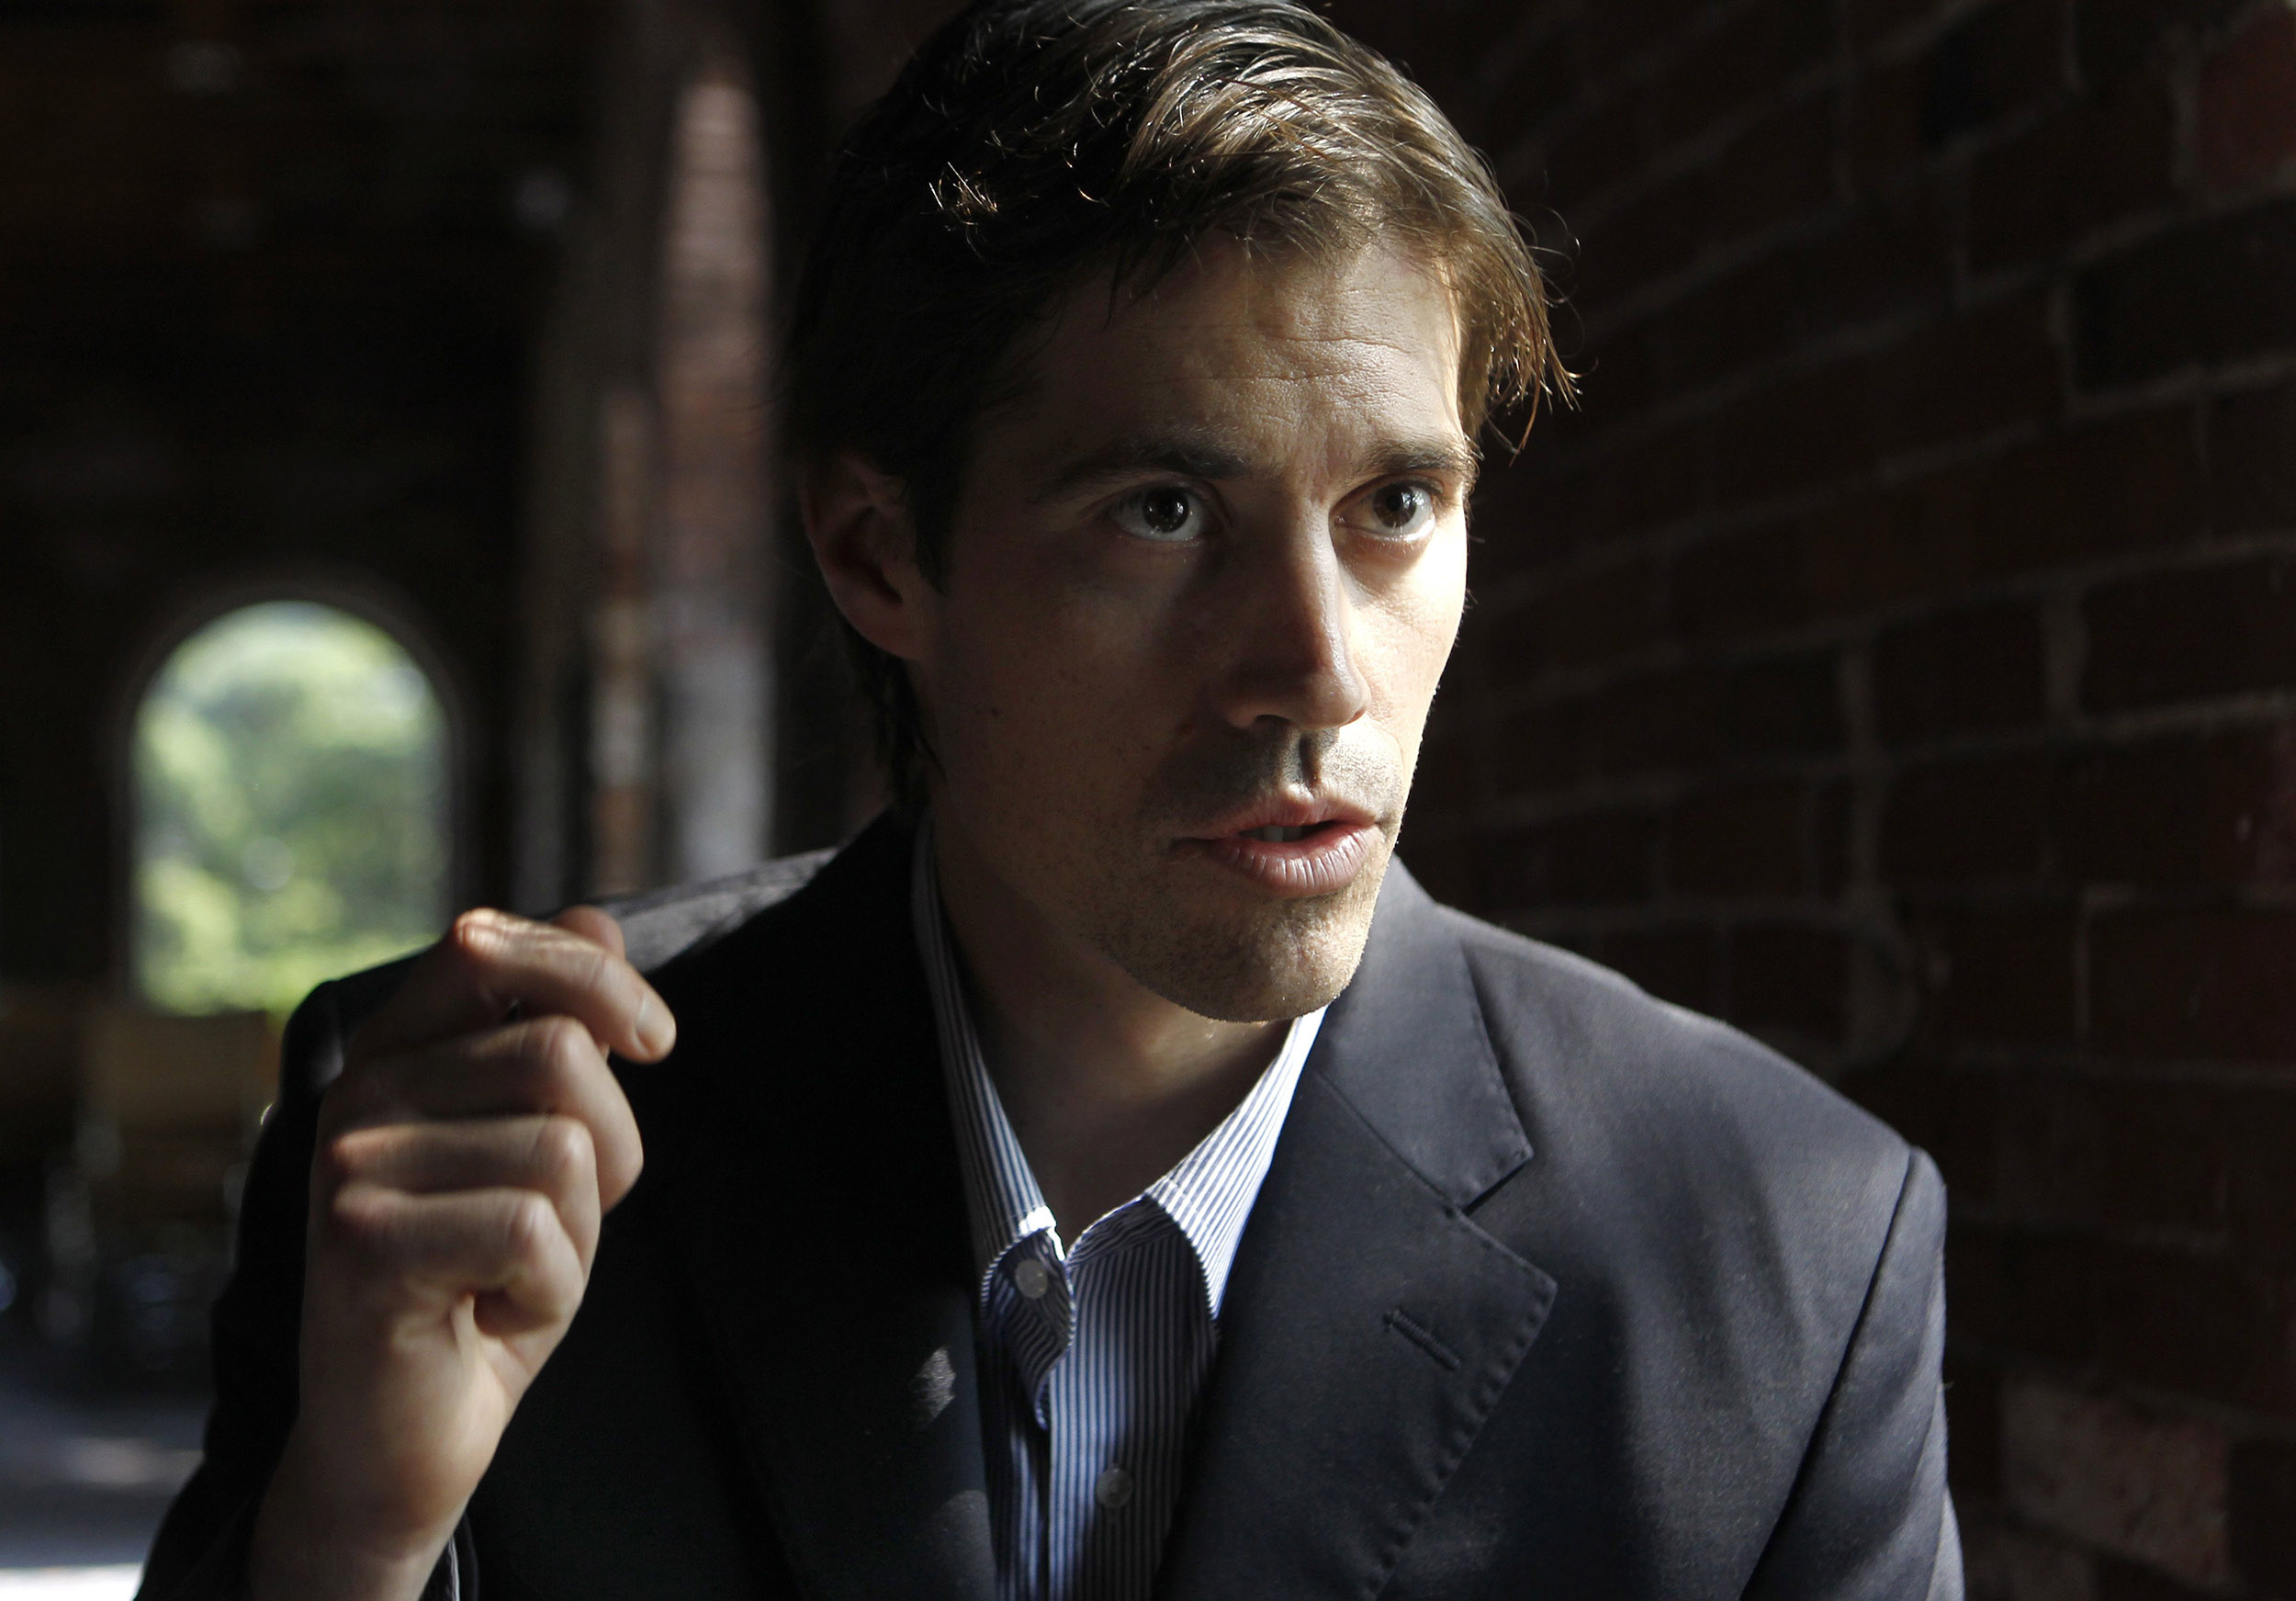 Image: Journalist James Foley